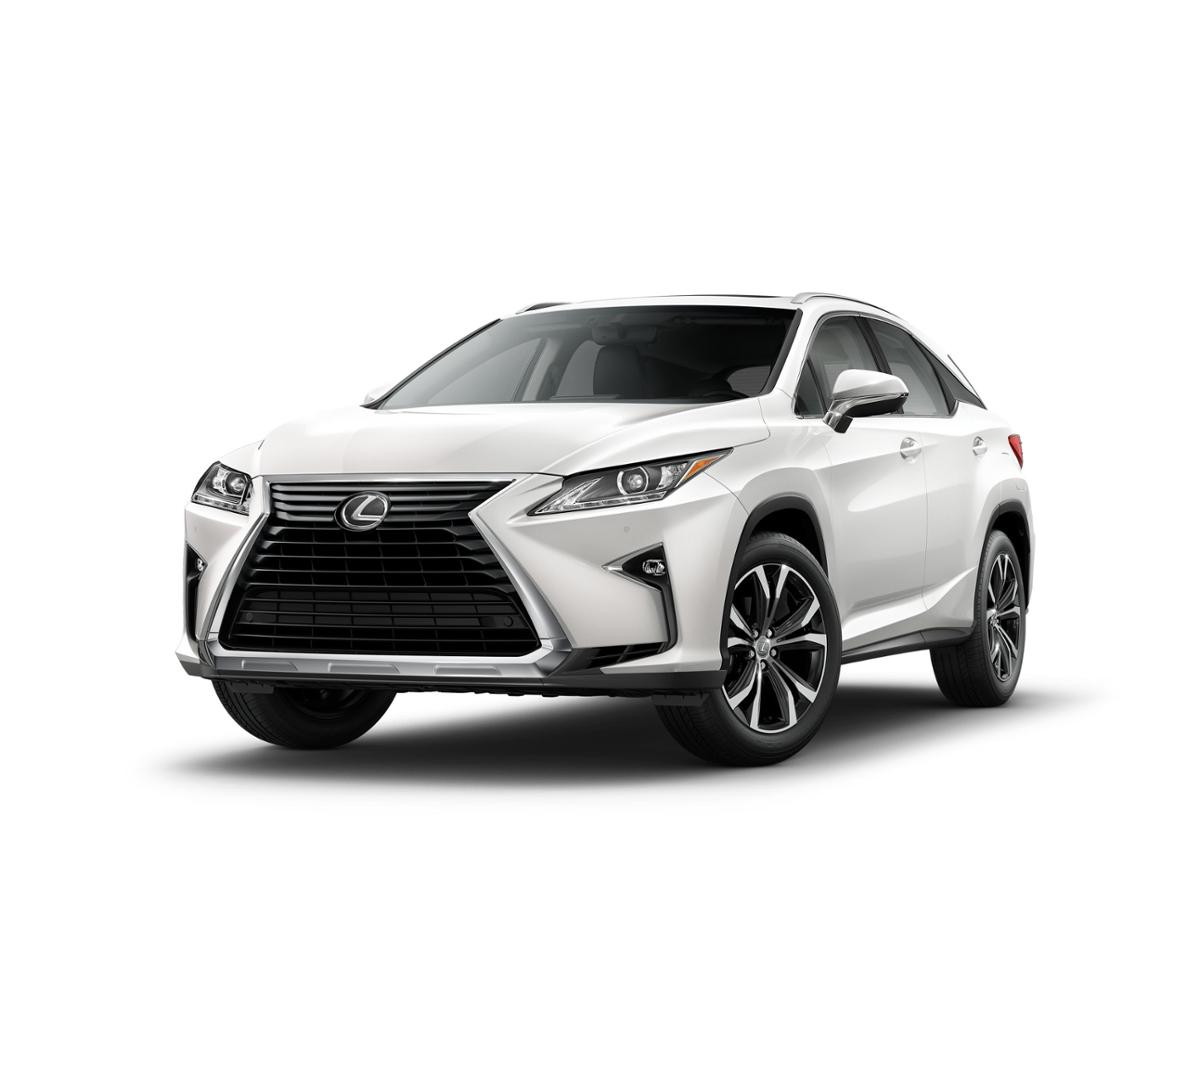 2018 Lexus RX 350 Vehicle Photo in Torrance, CA 90505